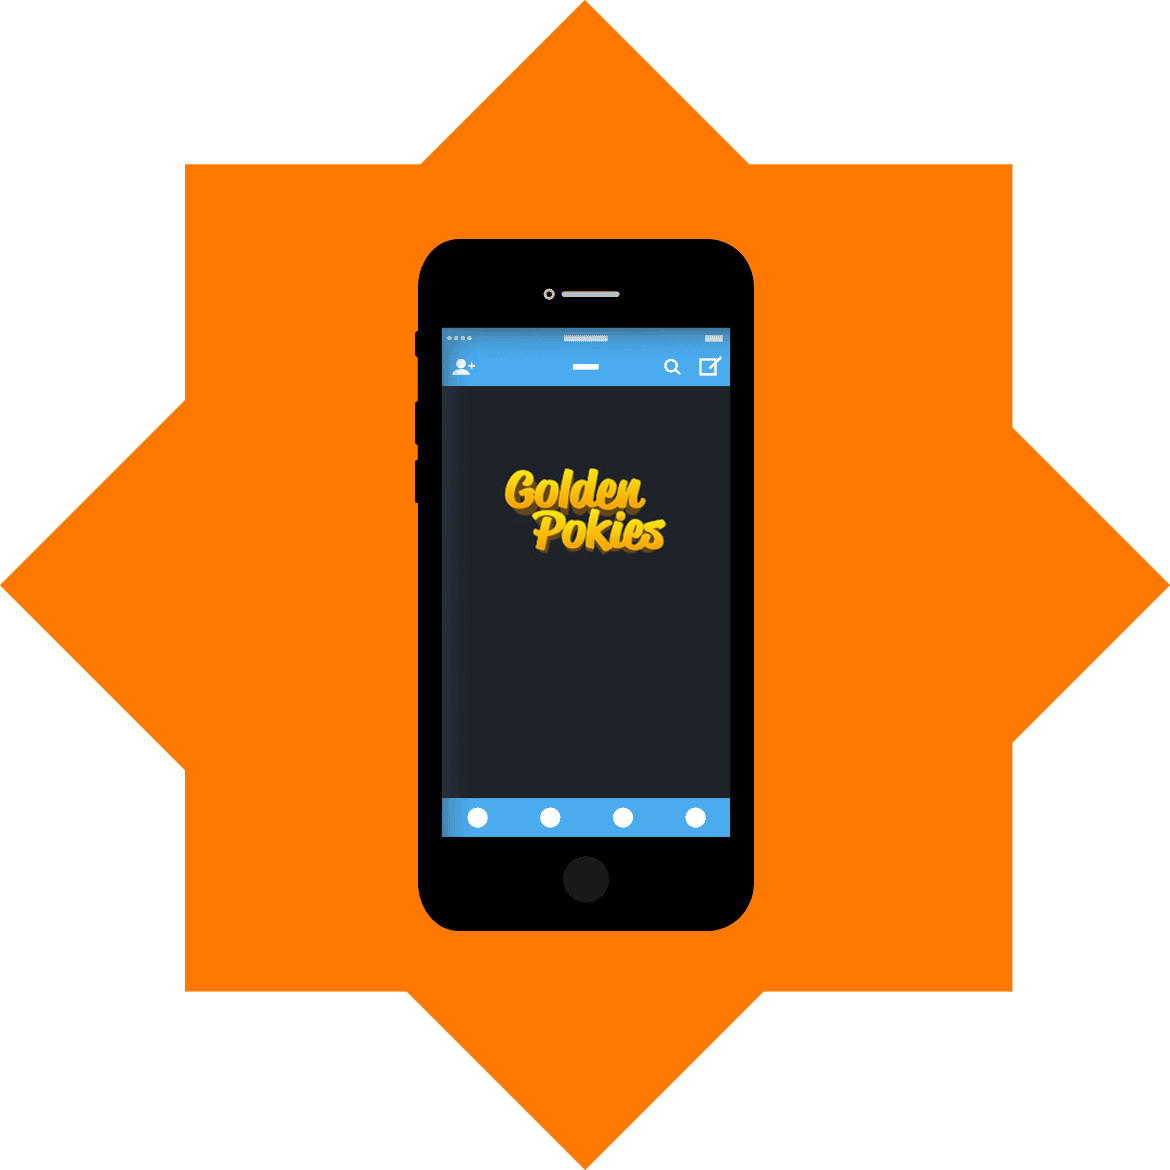 Golden Pokies - Mobile friendly